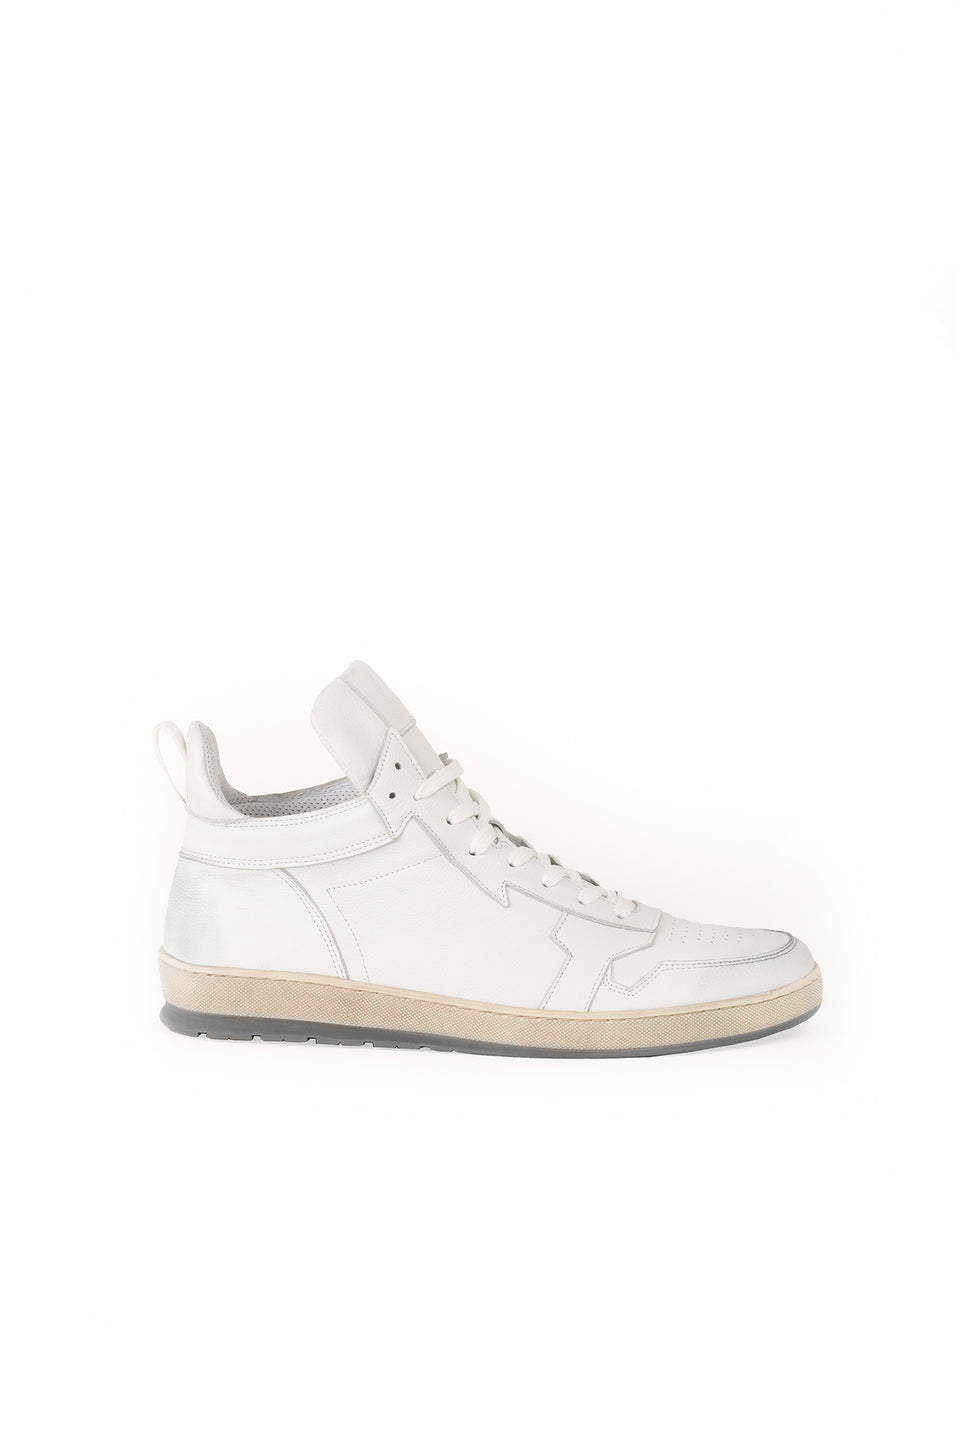 Gwanda 1's (Heritage Colorway) Sneakers